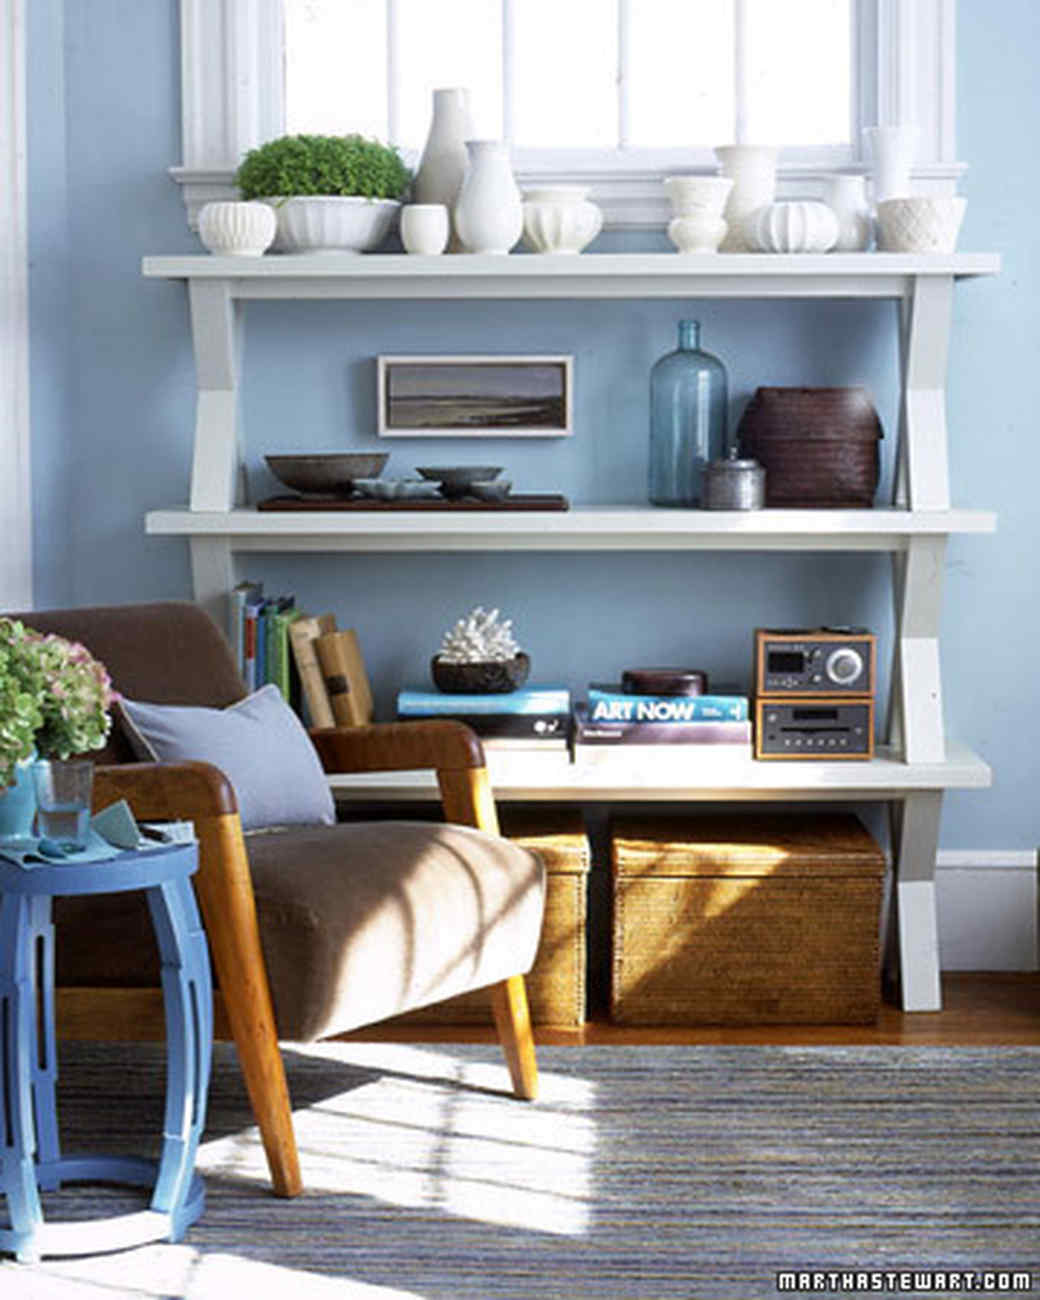 Banish Clutter How to Organize Every Room in Your Home Martha